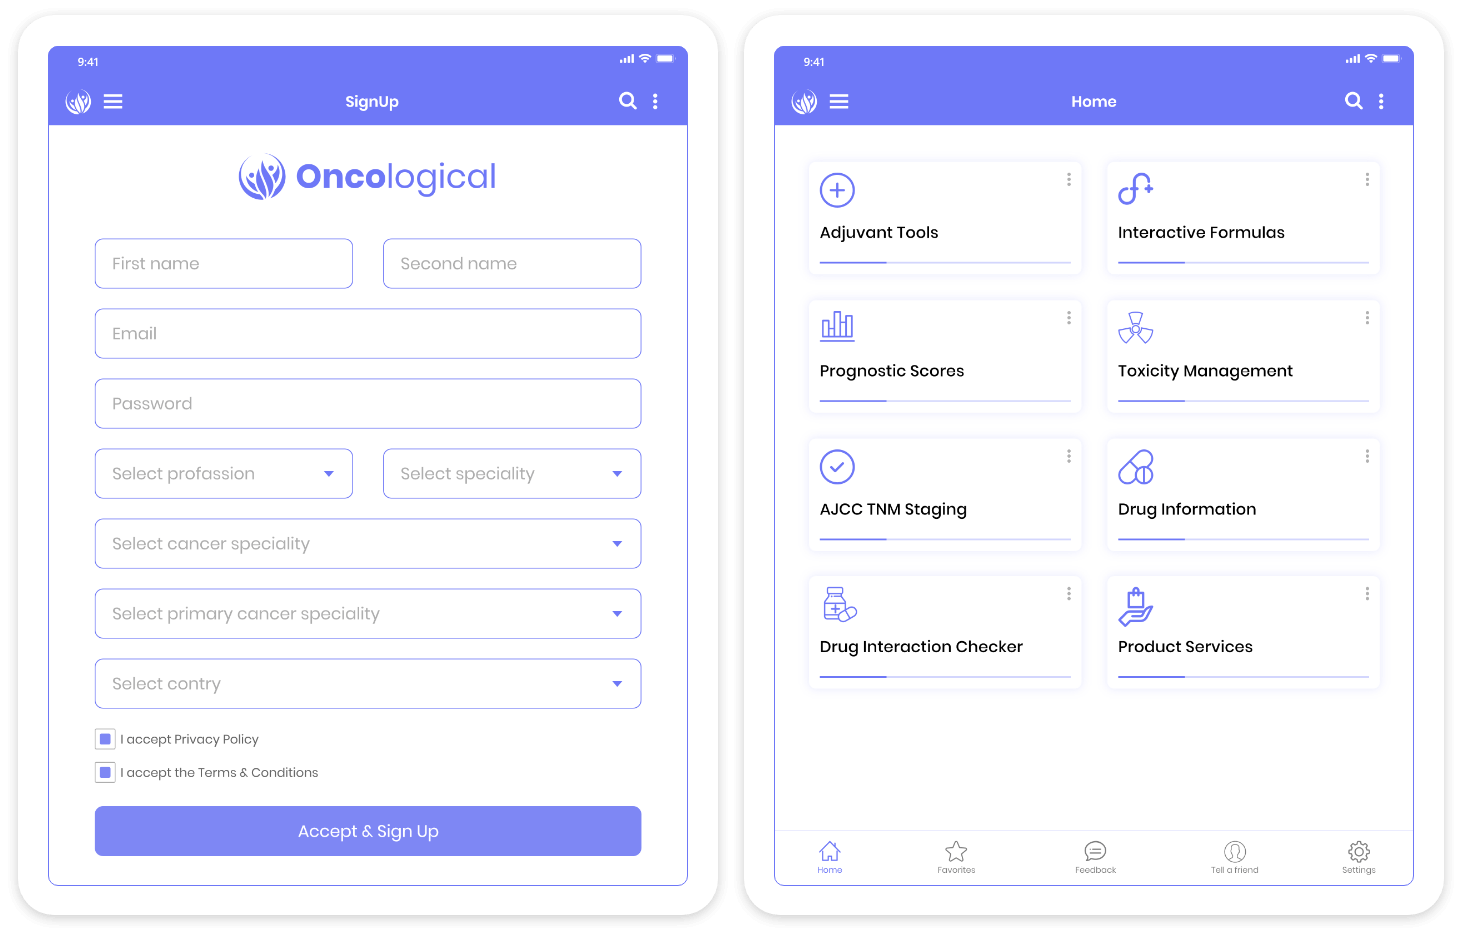 Oncological Support Tool Tablet Mockup